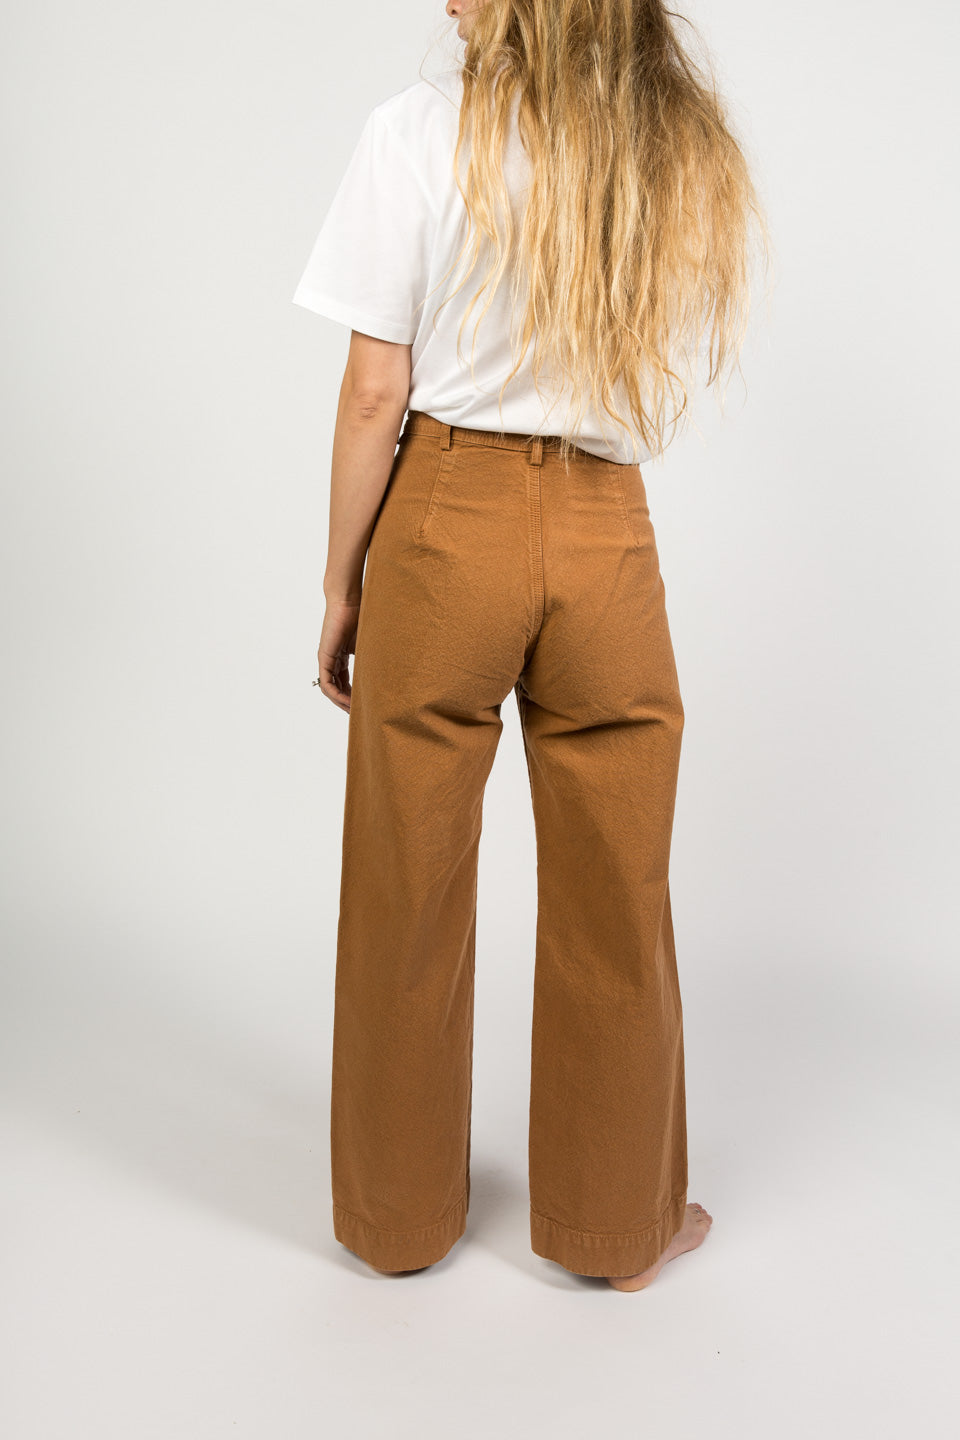 Jesse Kamm Sailor Pant Cork-Kamm Pants-Wide Leg Trouser